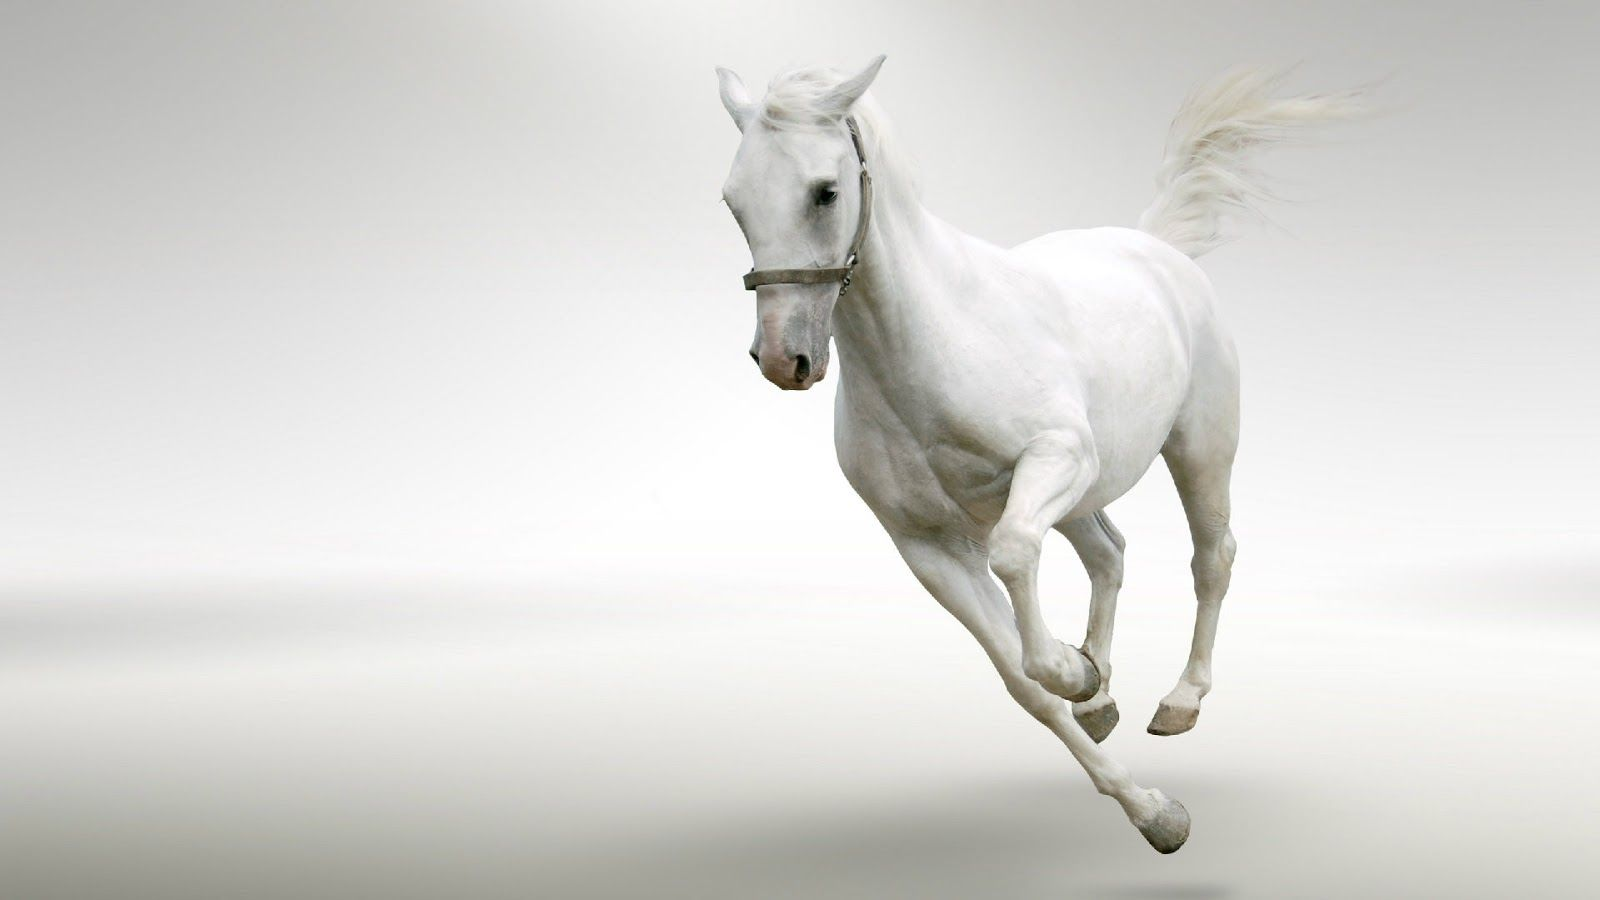 Running White Horse In Snow Wallpapers Hd Wallpaper Pic White Horses Horse Wallpaper Horses